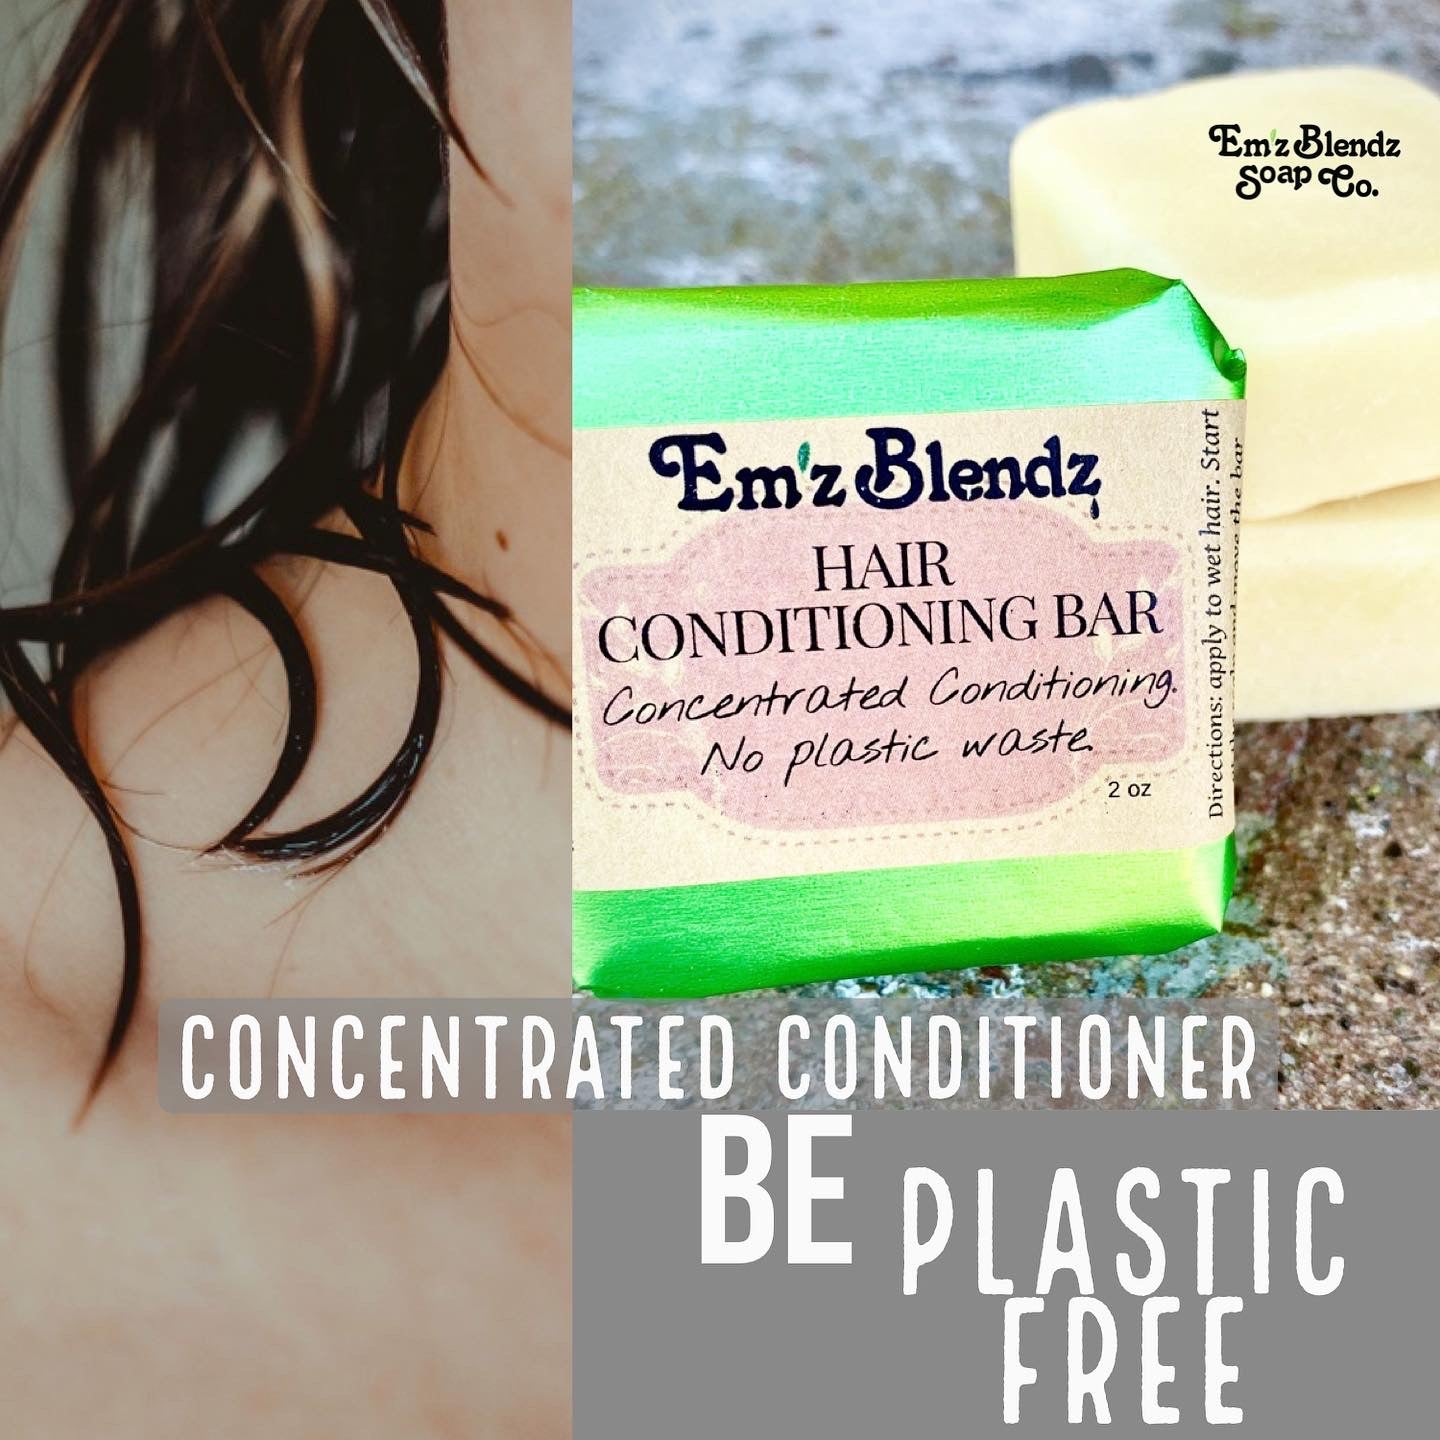 Hair Conditioning Bar | Concentated Contioning | Plastic Free